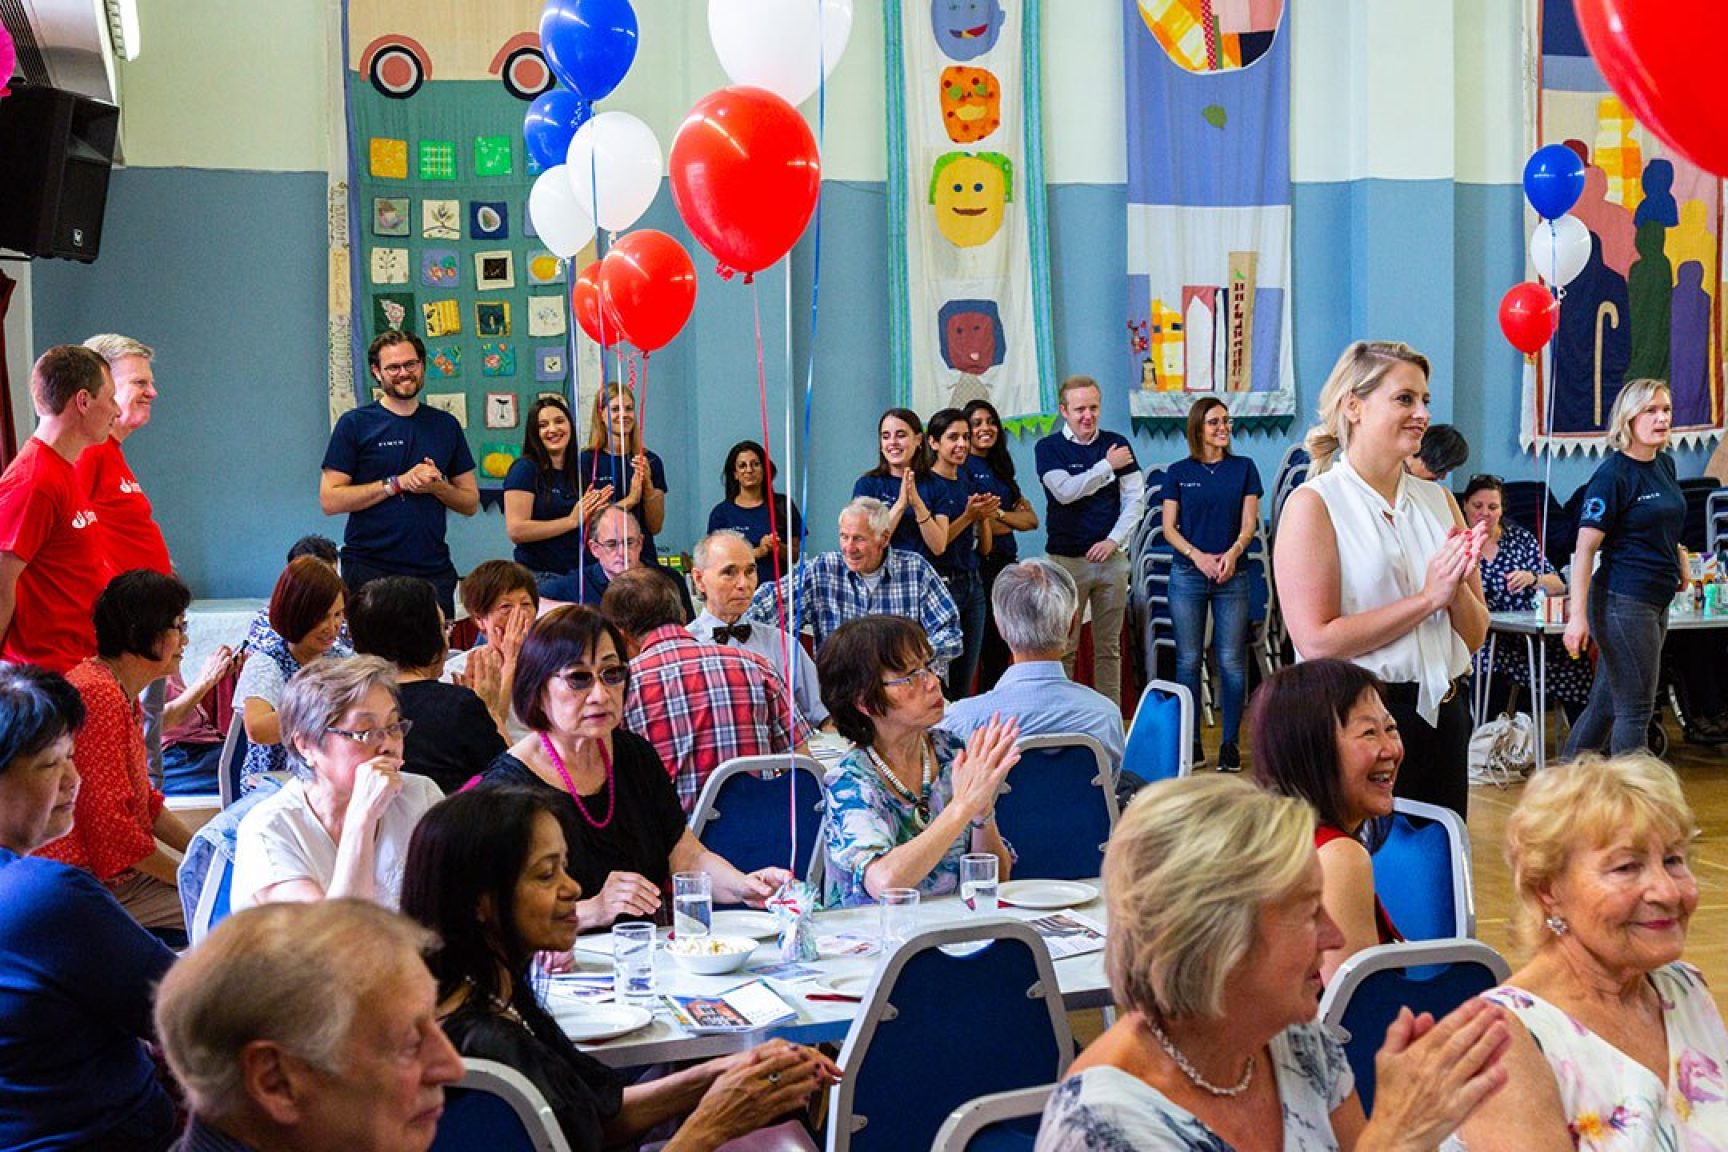 A community event, there are balloons tied to chairs, and people are looking at something off camera. People are smiling and looking really happy.